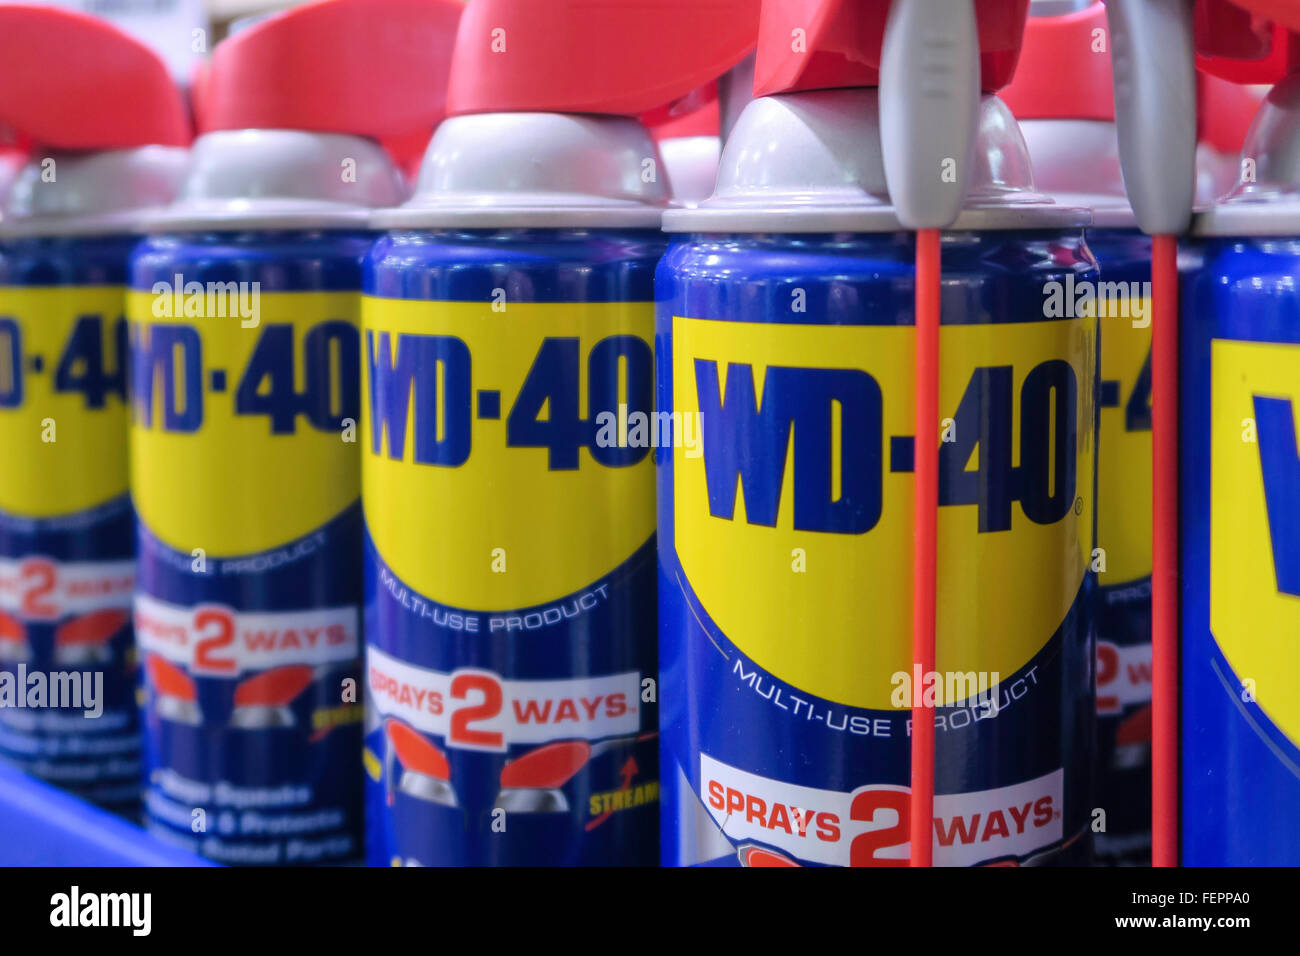 Wd 40 Stock Photos & Wd 40 Stock Images - Alamy